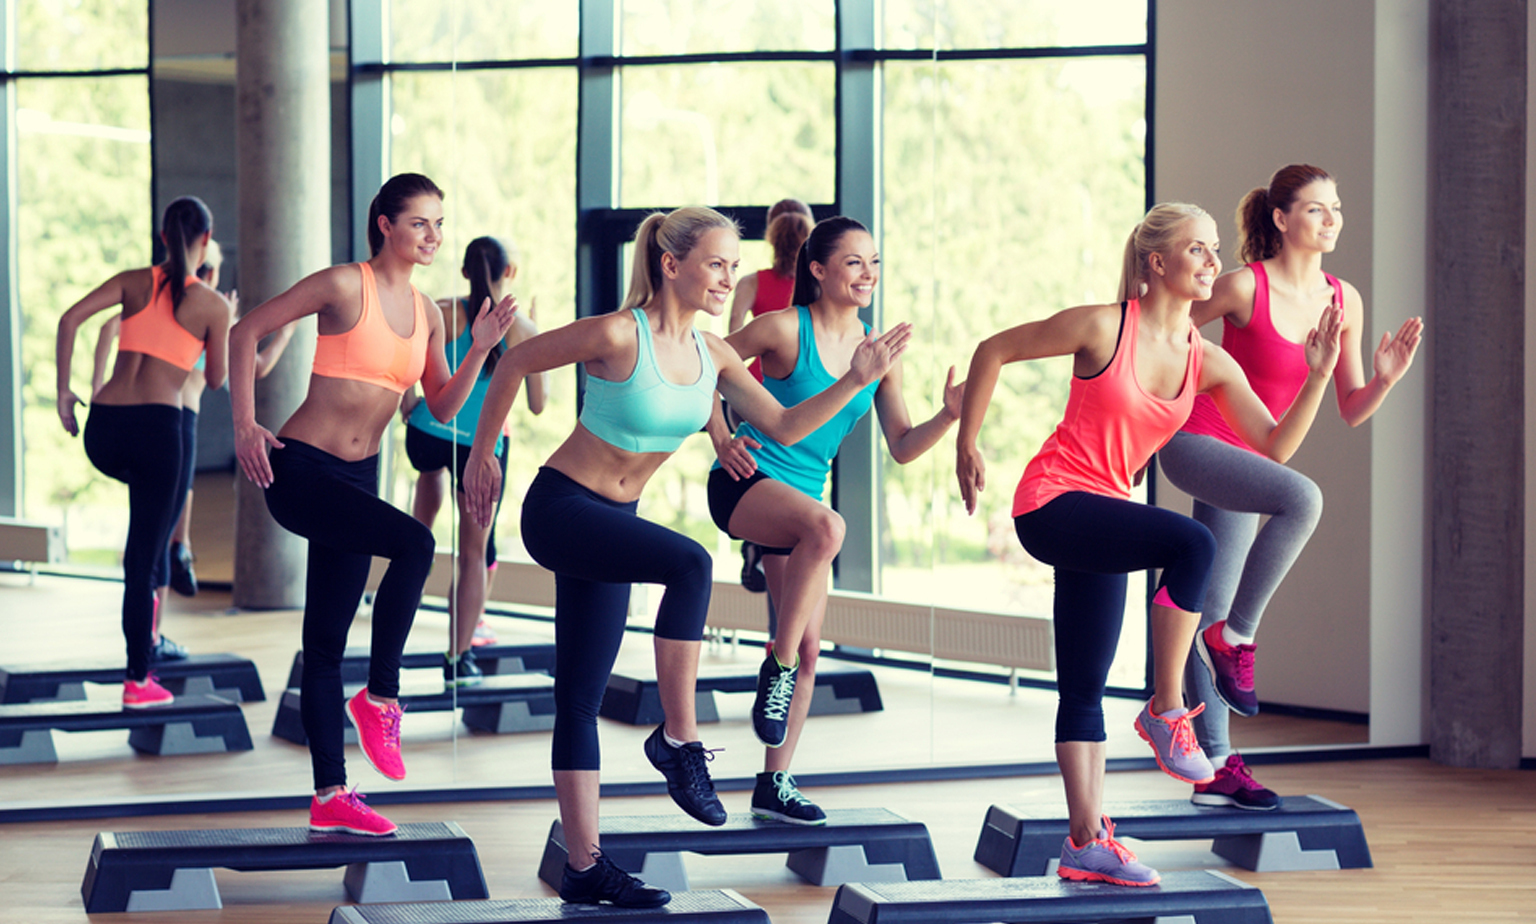 Womens Workout Trainers - Up to 50% Off